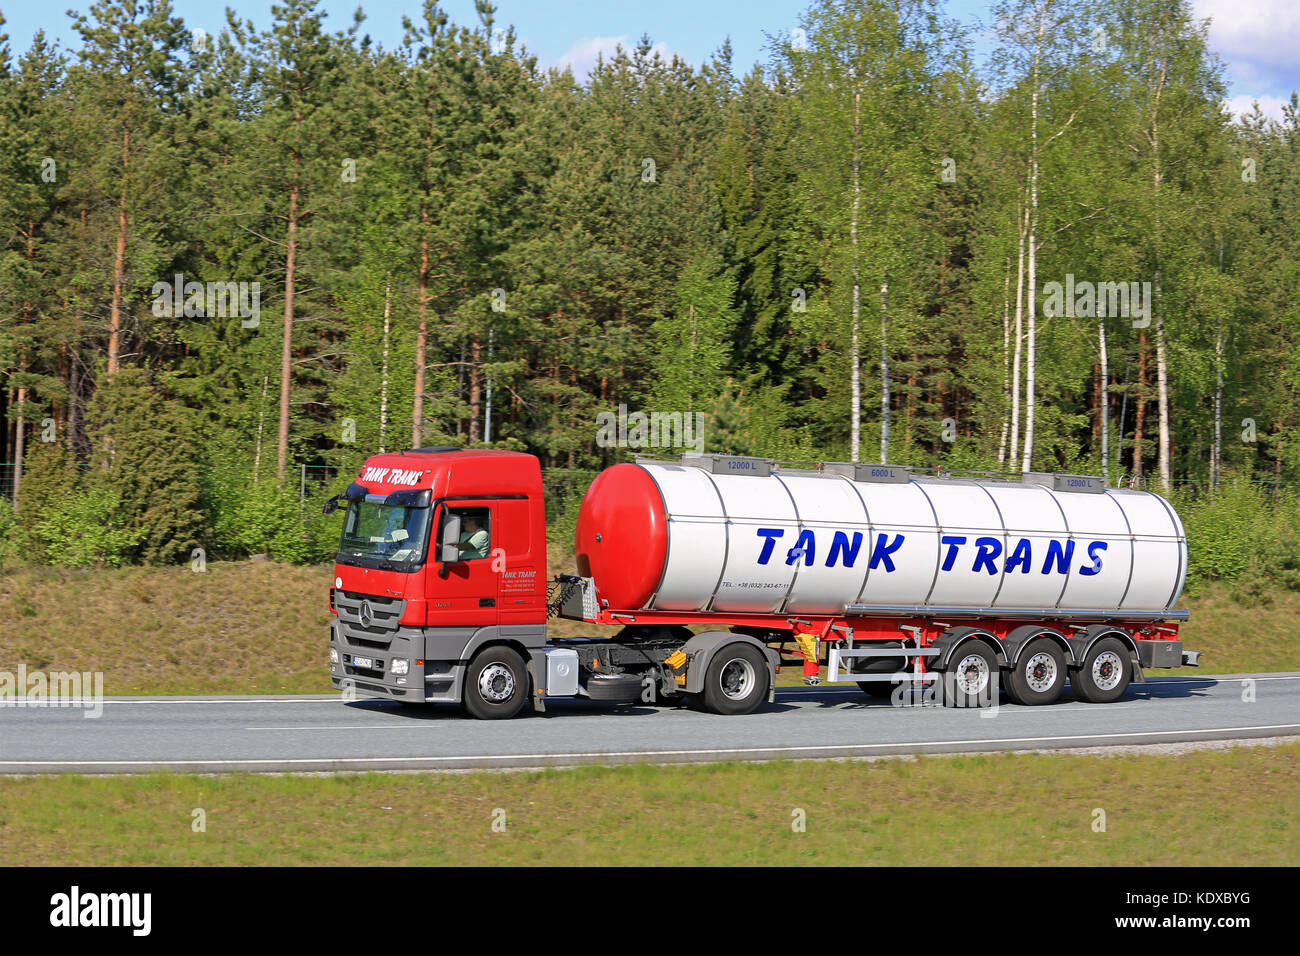 SALO, FINLAND - MAY 22, 2016: Red Mercedes-Benz Actros semi tank truck drives along motorway flanked by forest in - Stock Image